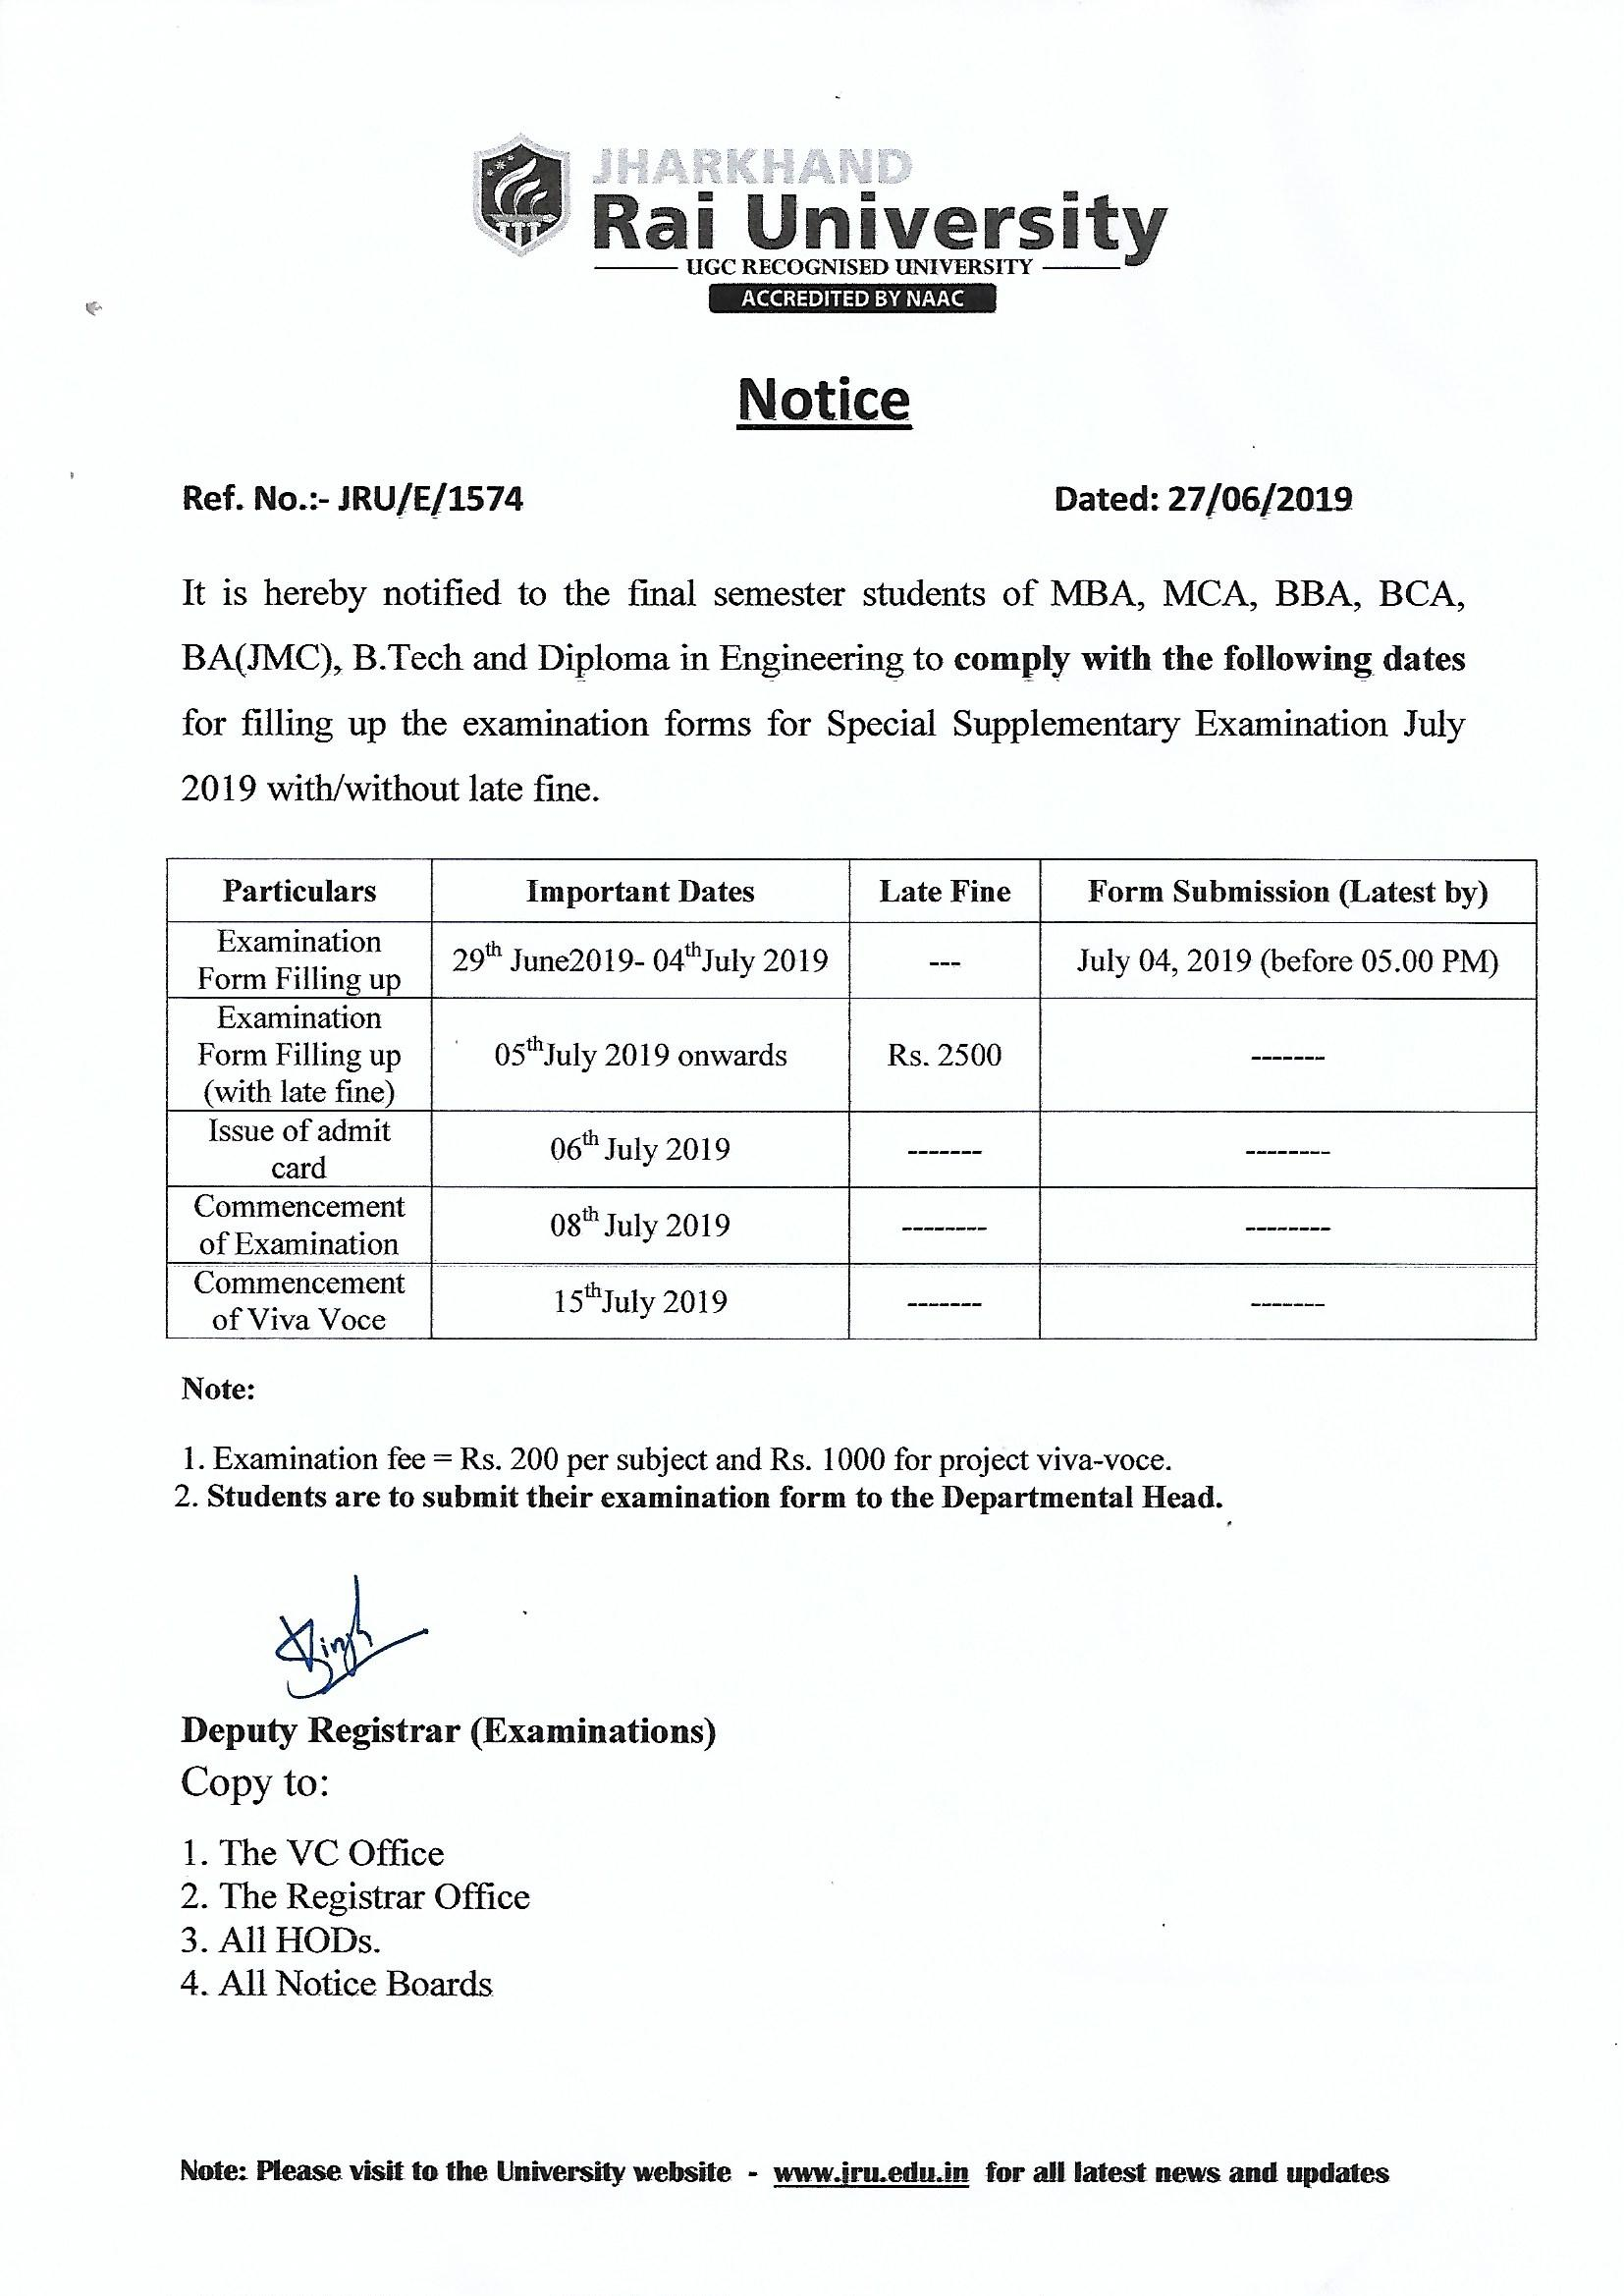 Notice for the examination form filling up date of Special